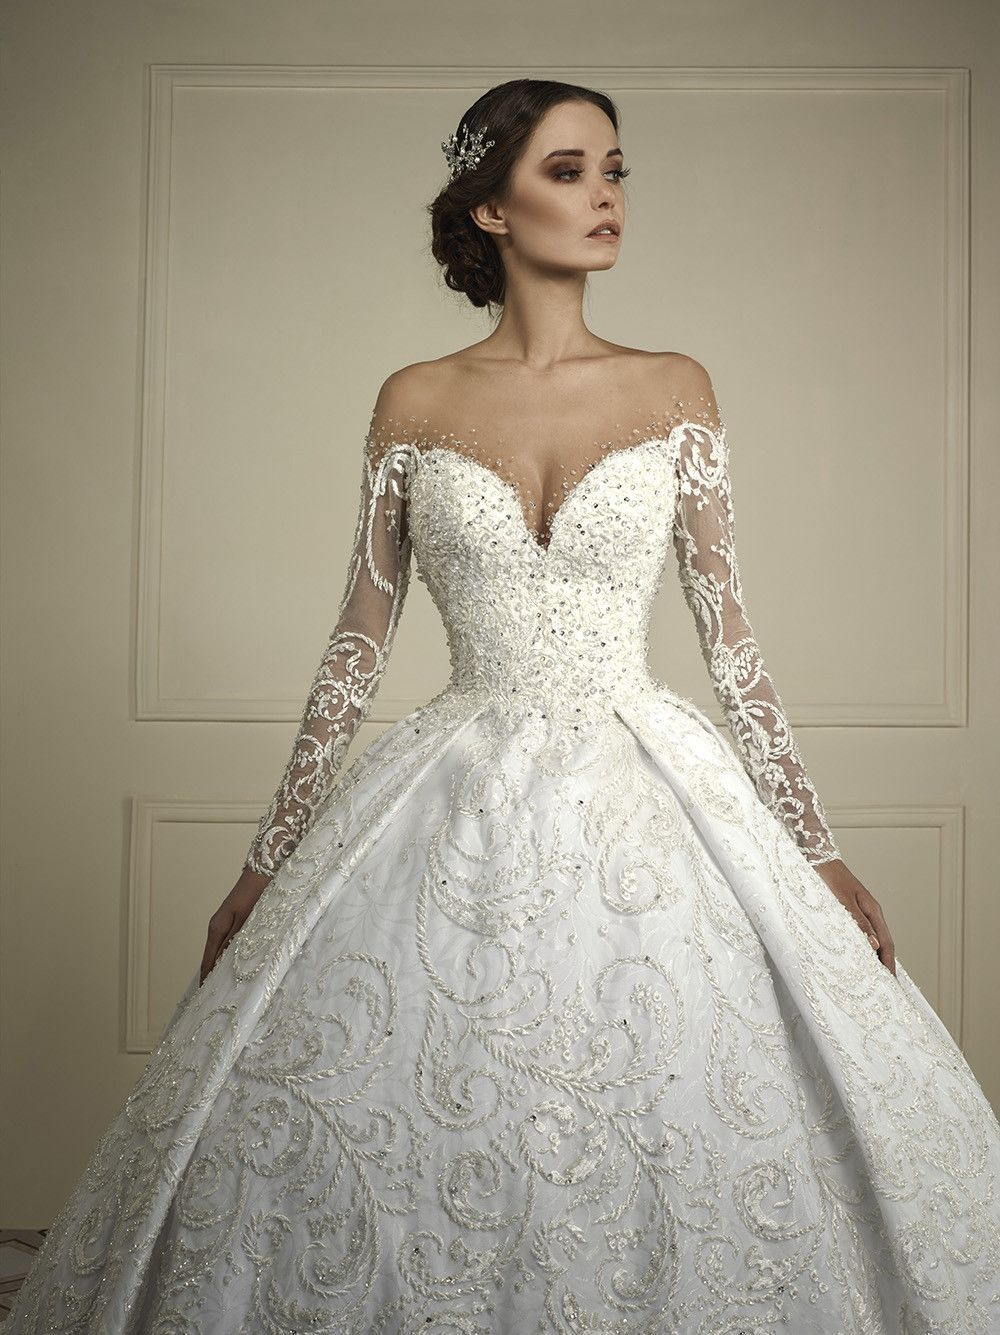 Cdress Lace Appliques V-Neck Wedding Dresses Beads Crystal Bow Sashes Bridal Gowns